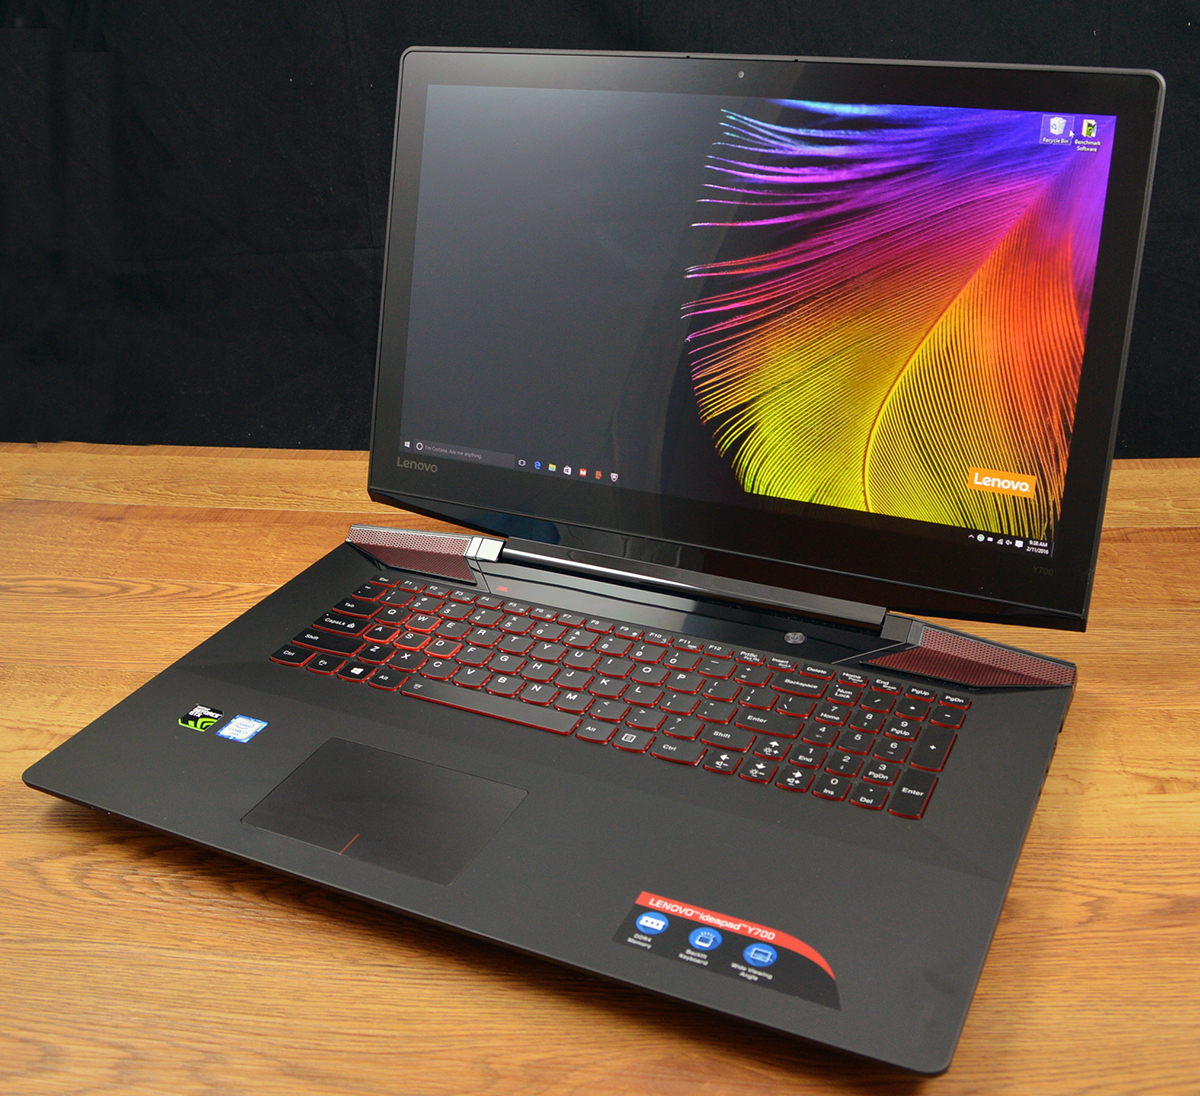 the lenovo ideapad y700 -#main